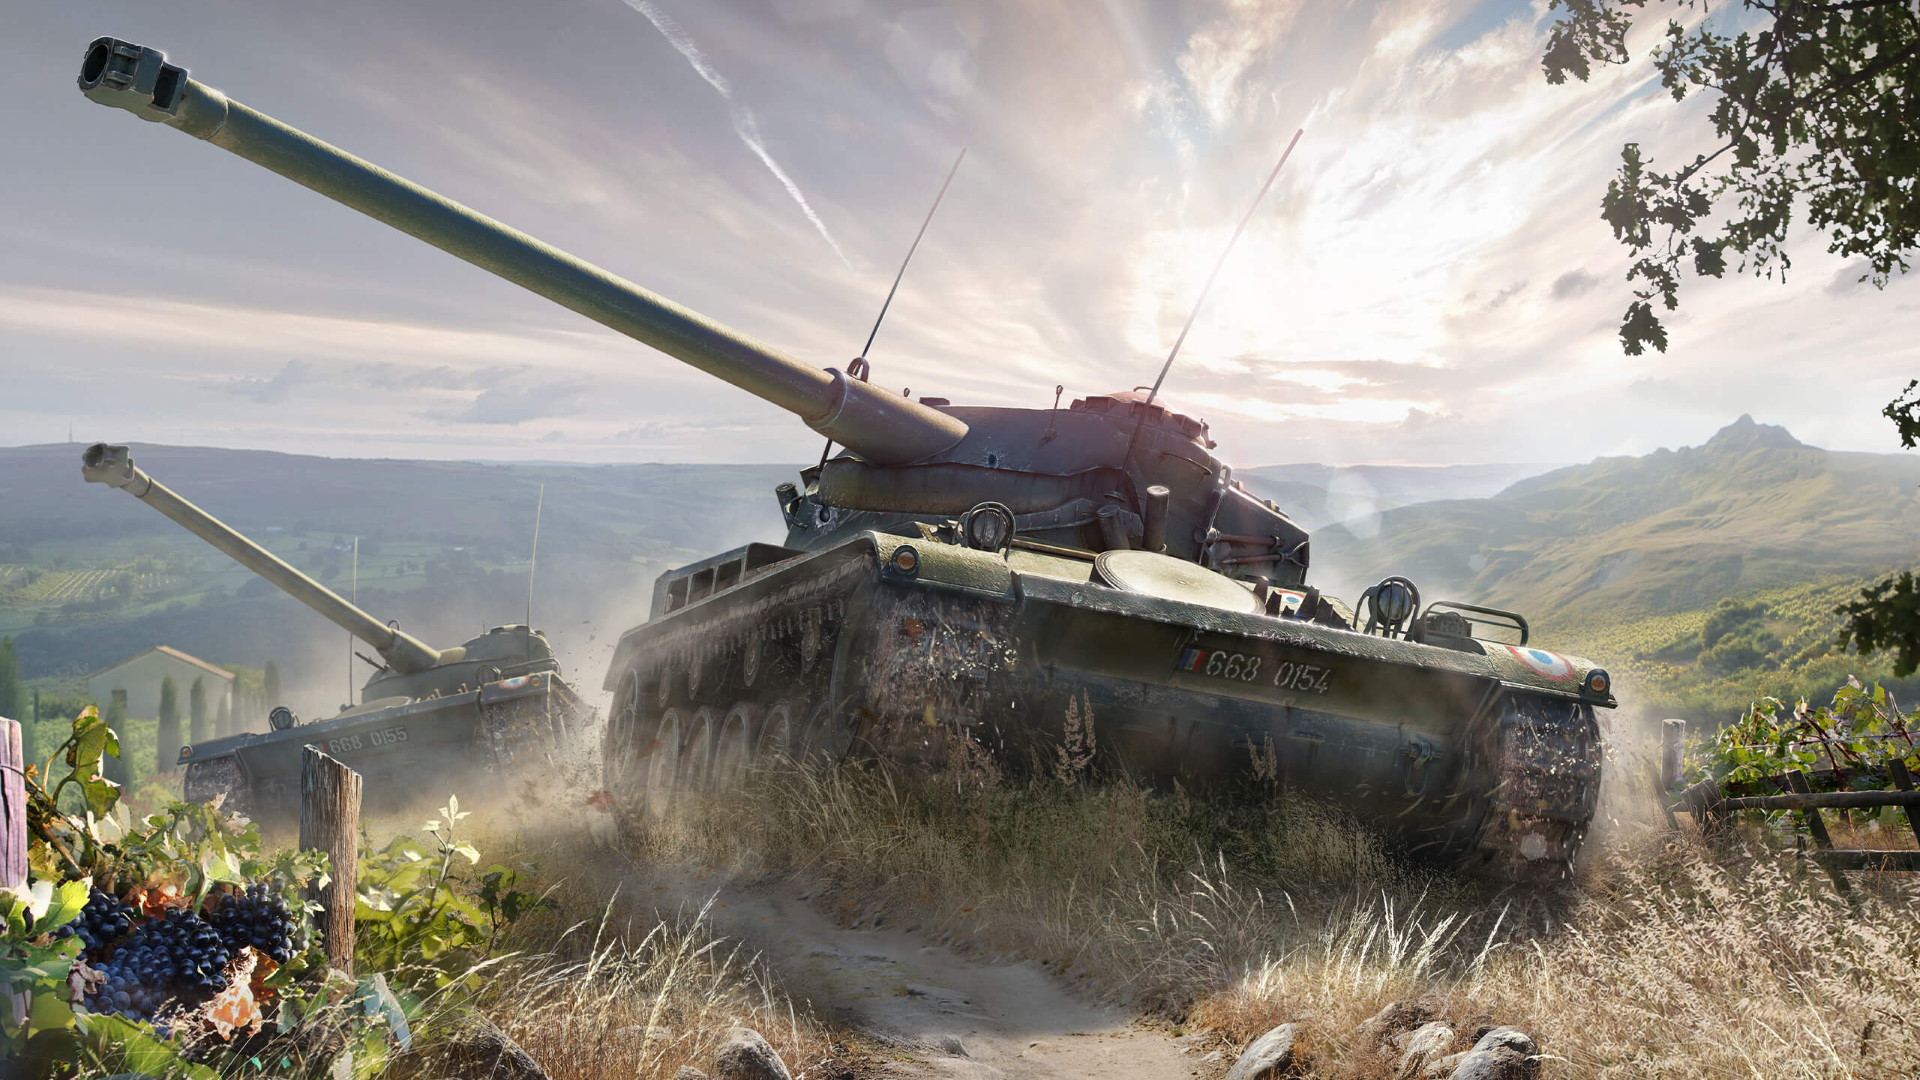 World of Tanks has been Announced for Next Gen Platforms